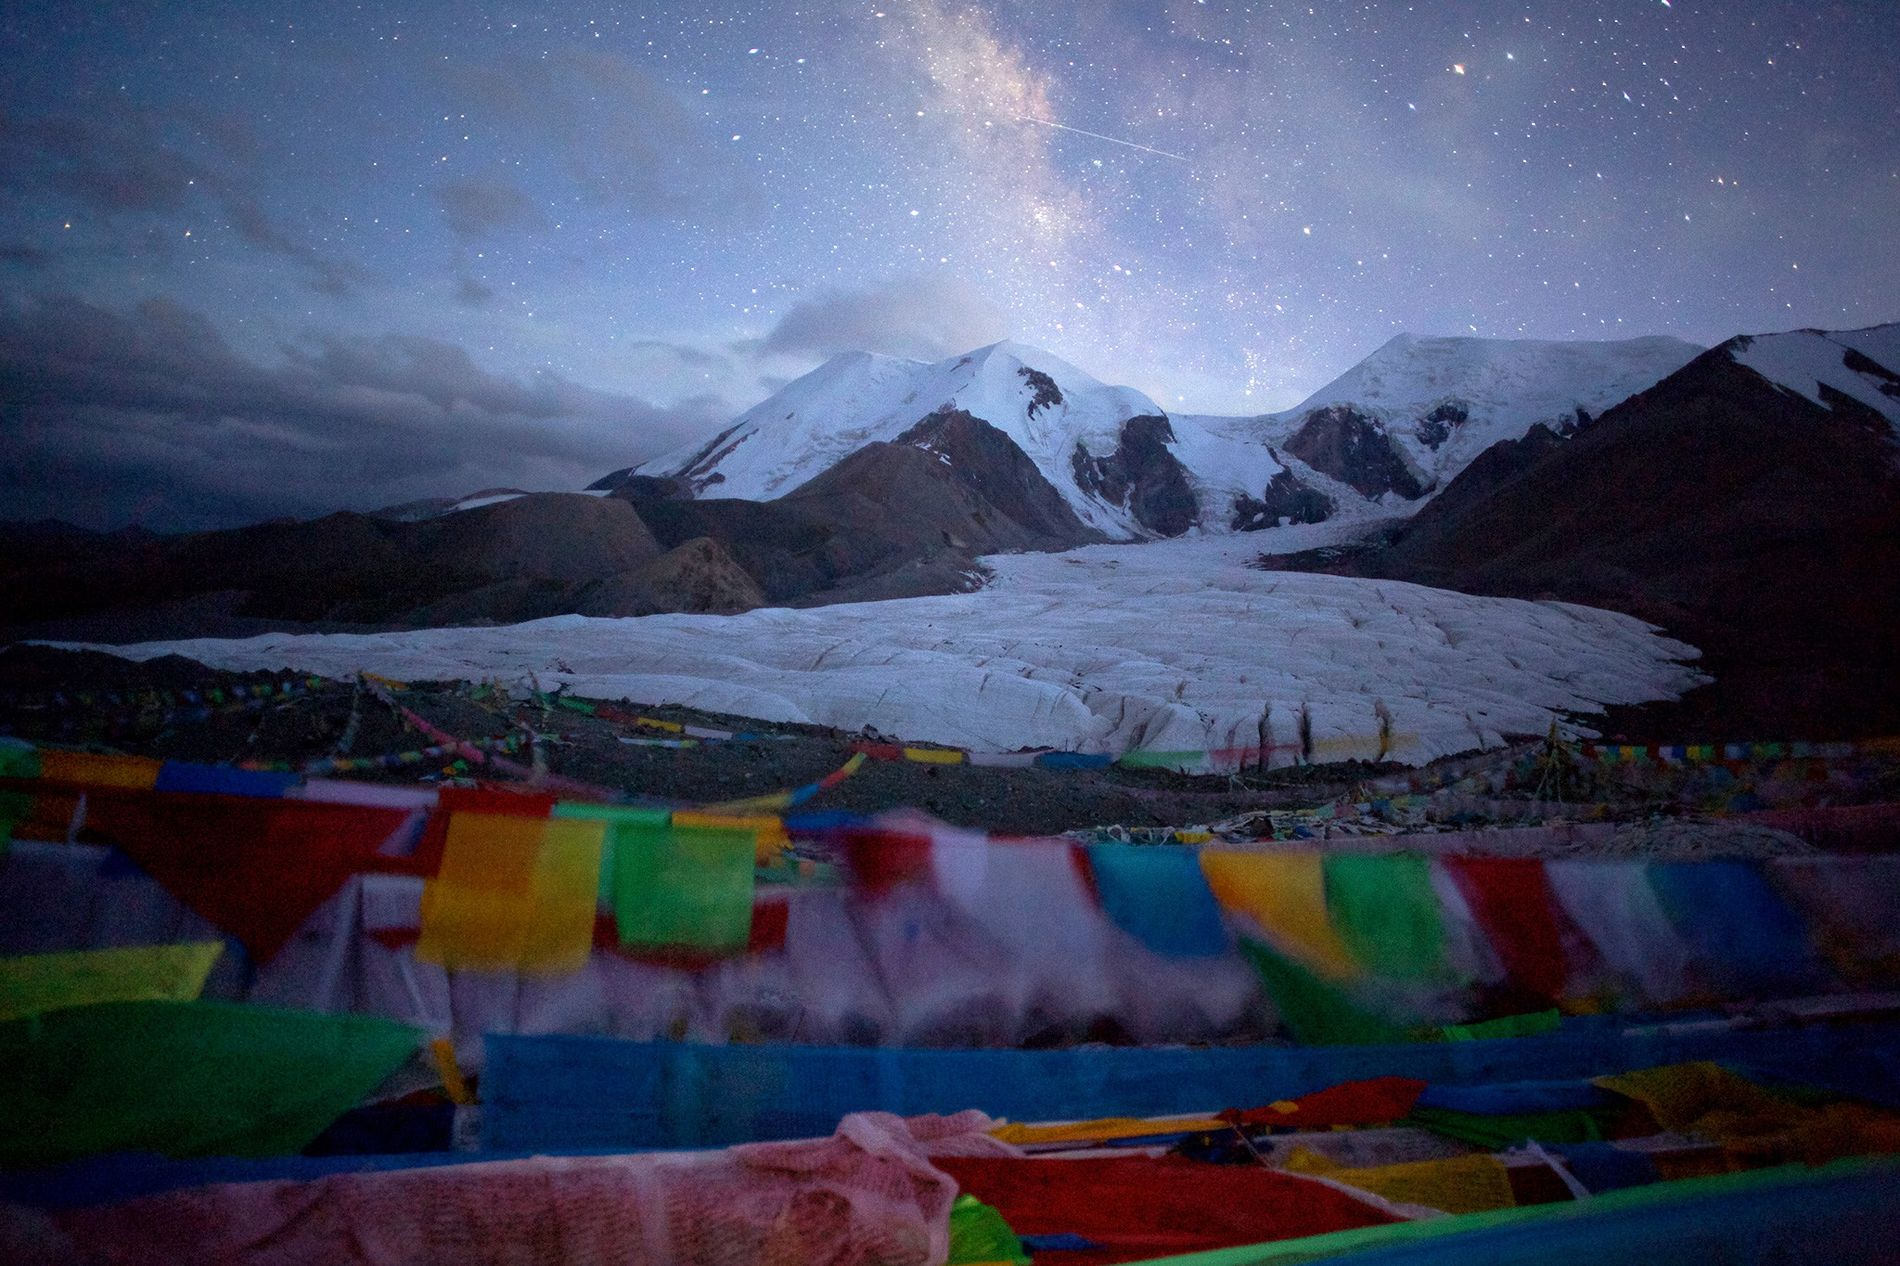 Stars sparkle over a glacier on Animaqin Mountain in Tibet's Guoluo County. The thin air and ...